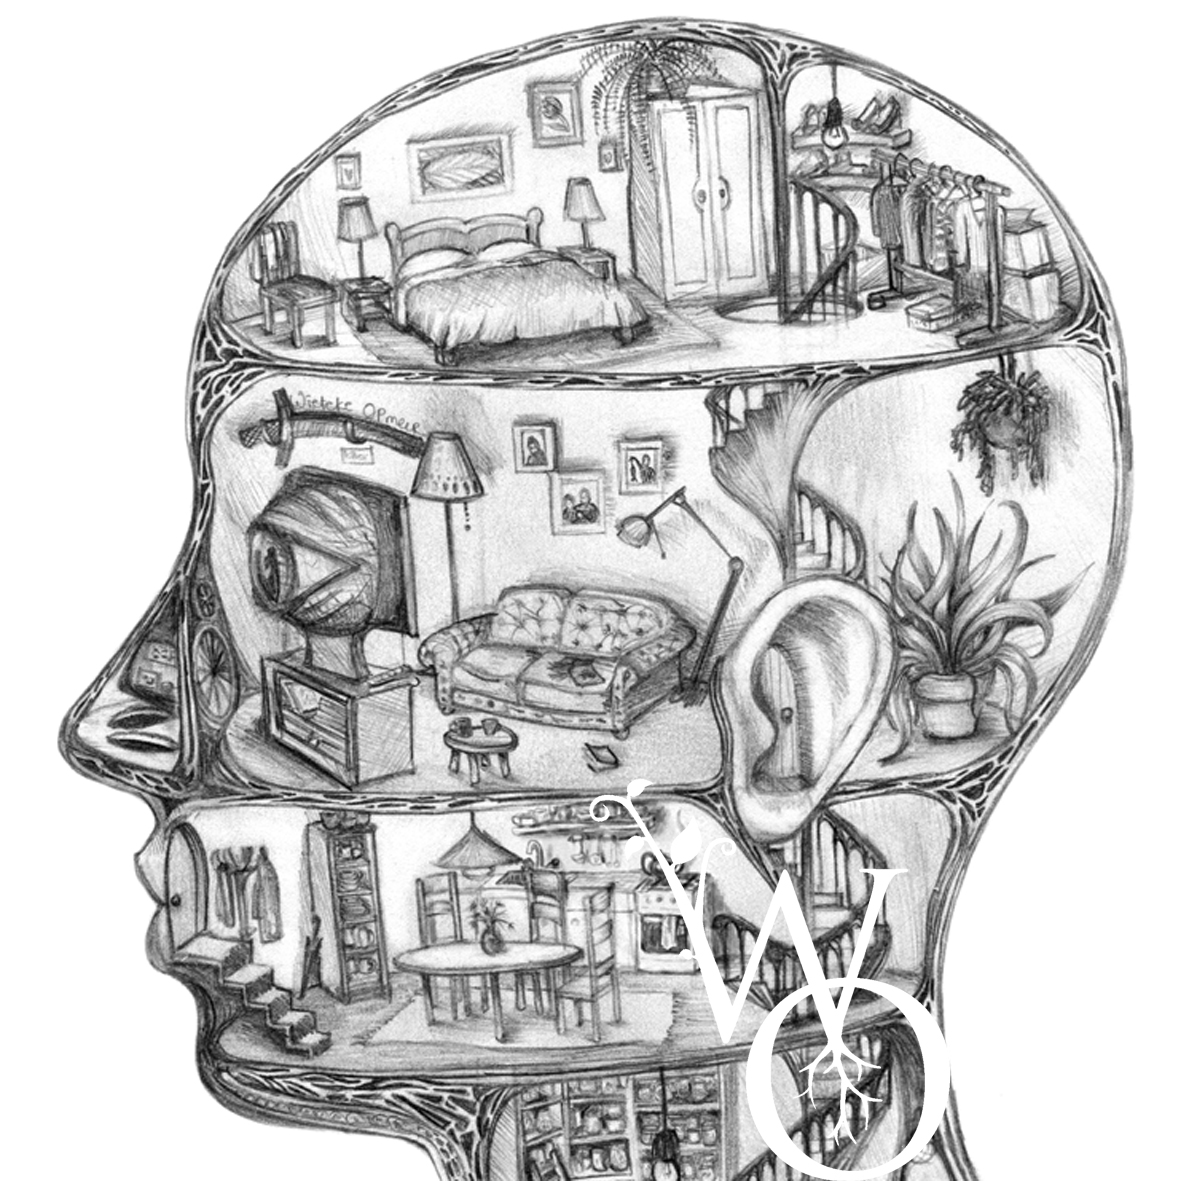 drawing of intersected human head showing a fantastical house.